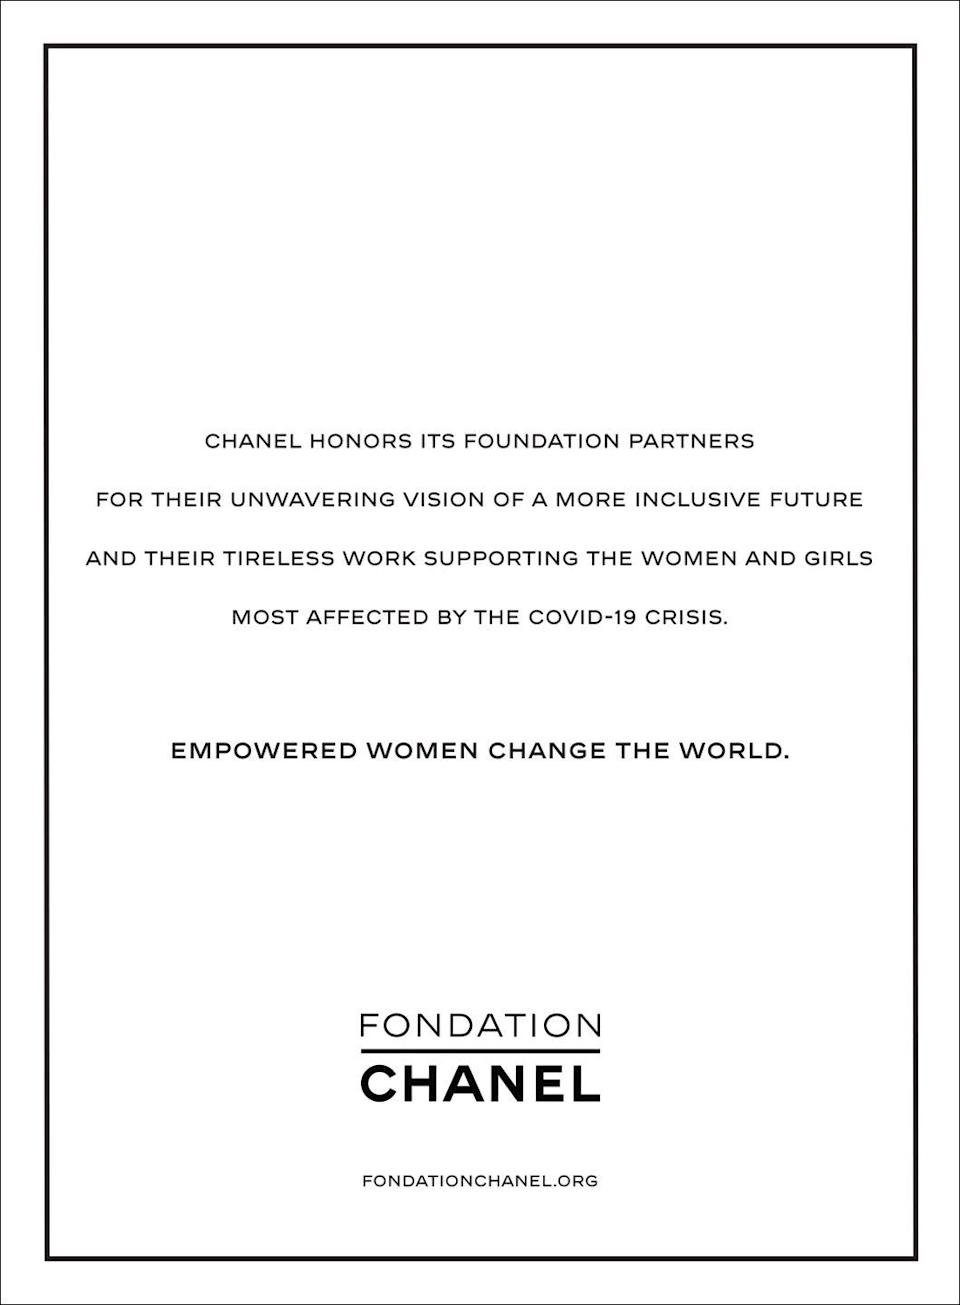 """<p>Chanel honors its foundation partners for their unwavering vision of a more inclusive future and their tireless work supporting the women and girls most affected by the COVID-19 crisis.</p><p>Empowered women change the world. Learn more <a href=""""http://www.fondationchanel.org/fr/"""" rel=""""nofollow noopener"""" target=""""_blank"""" data-ylk=""""slk:here."""" class=""""link rapid-noclick-resp"""">here. </a></p>"""